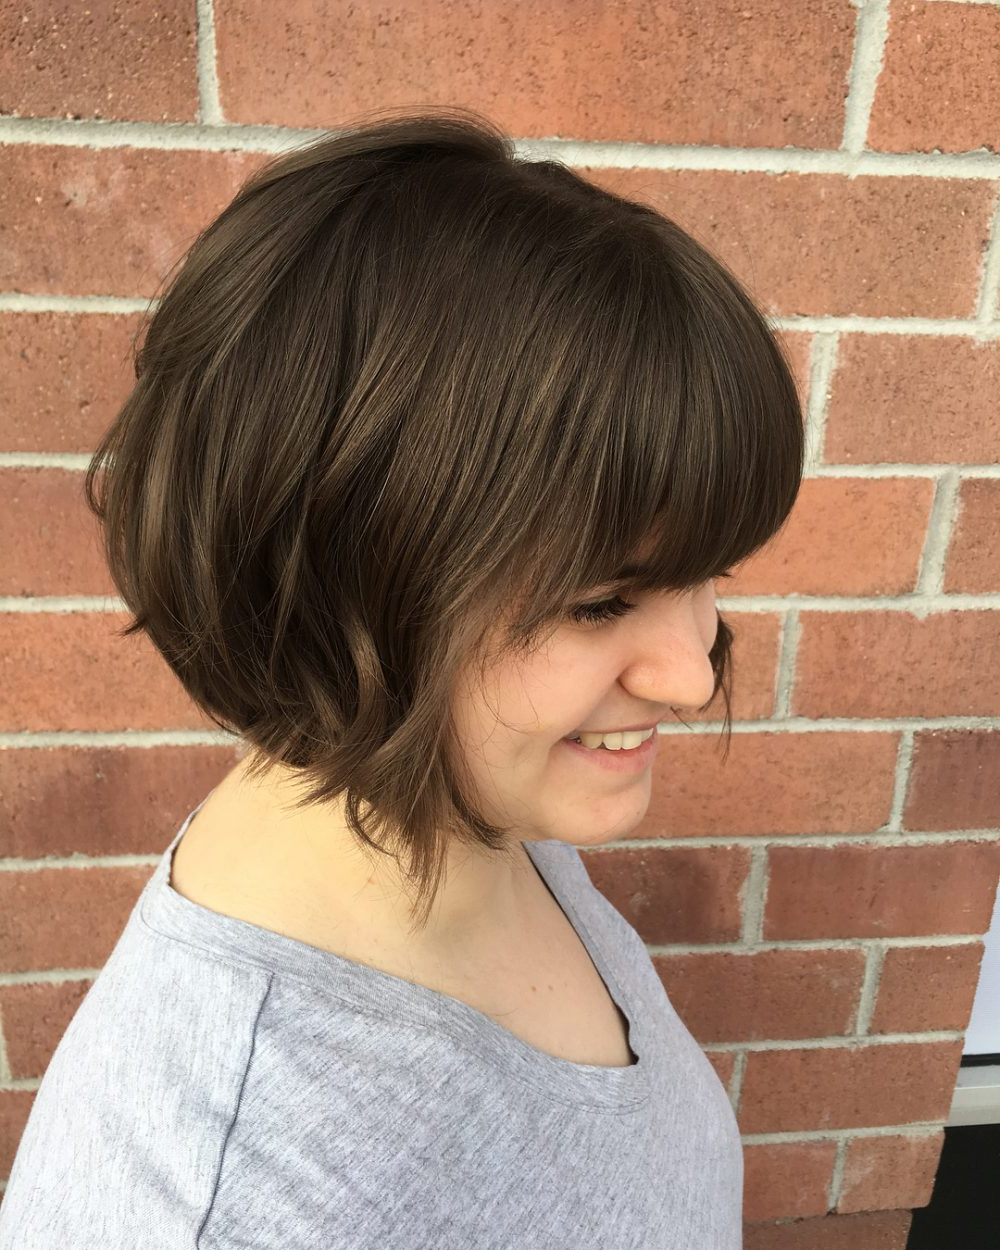 34 Greatest Short Haircuts And Hairstyles For Thick Hair For 2018 Intended For Short Hairstyles With Bangs For Fine Hair (View 22 of 25)